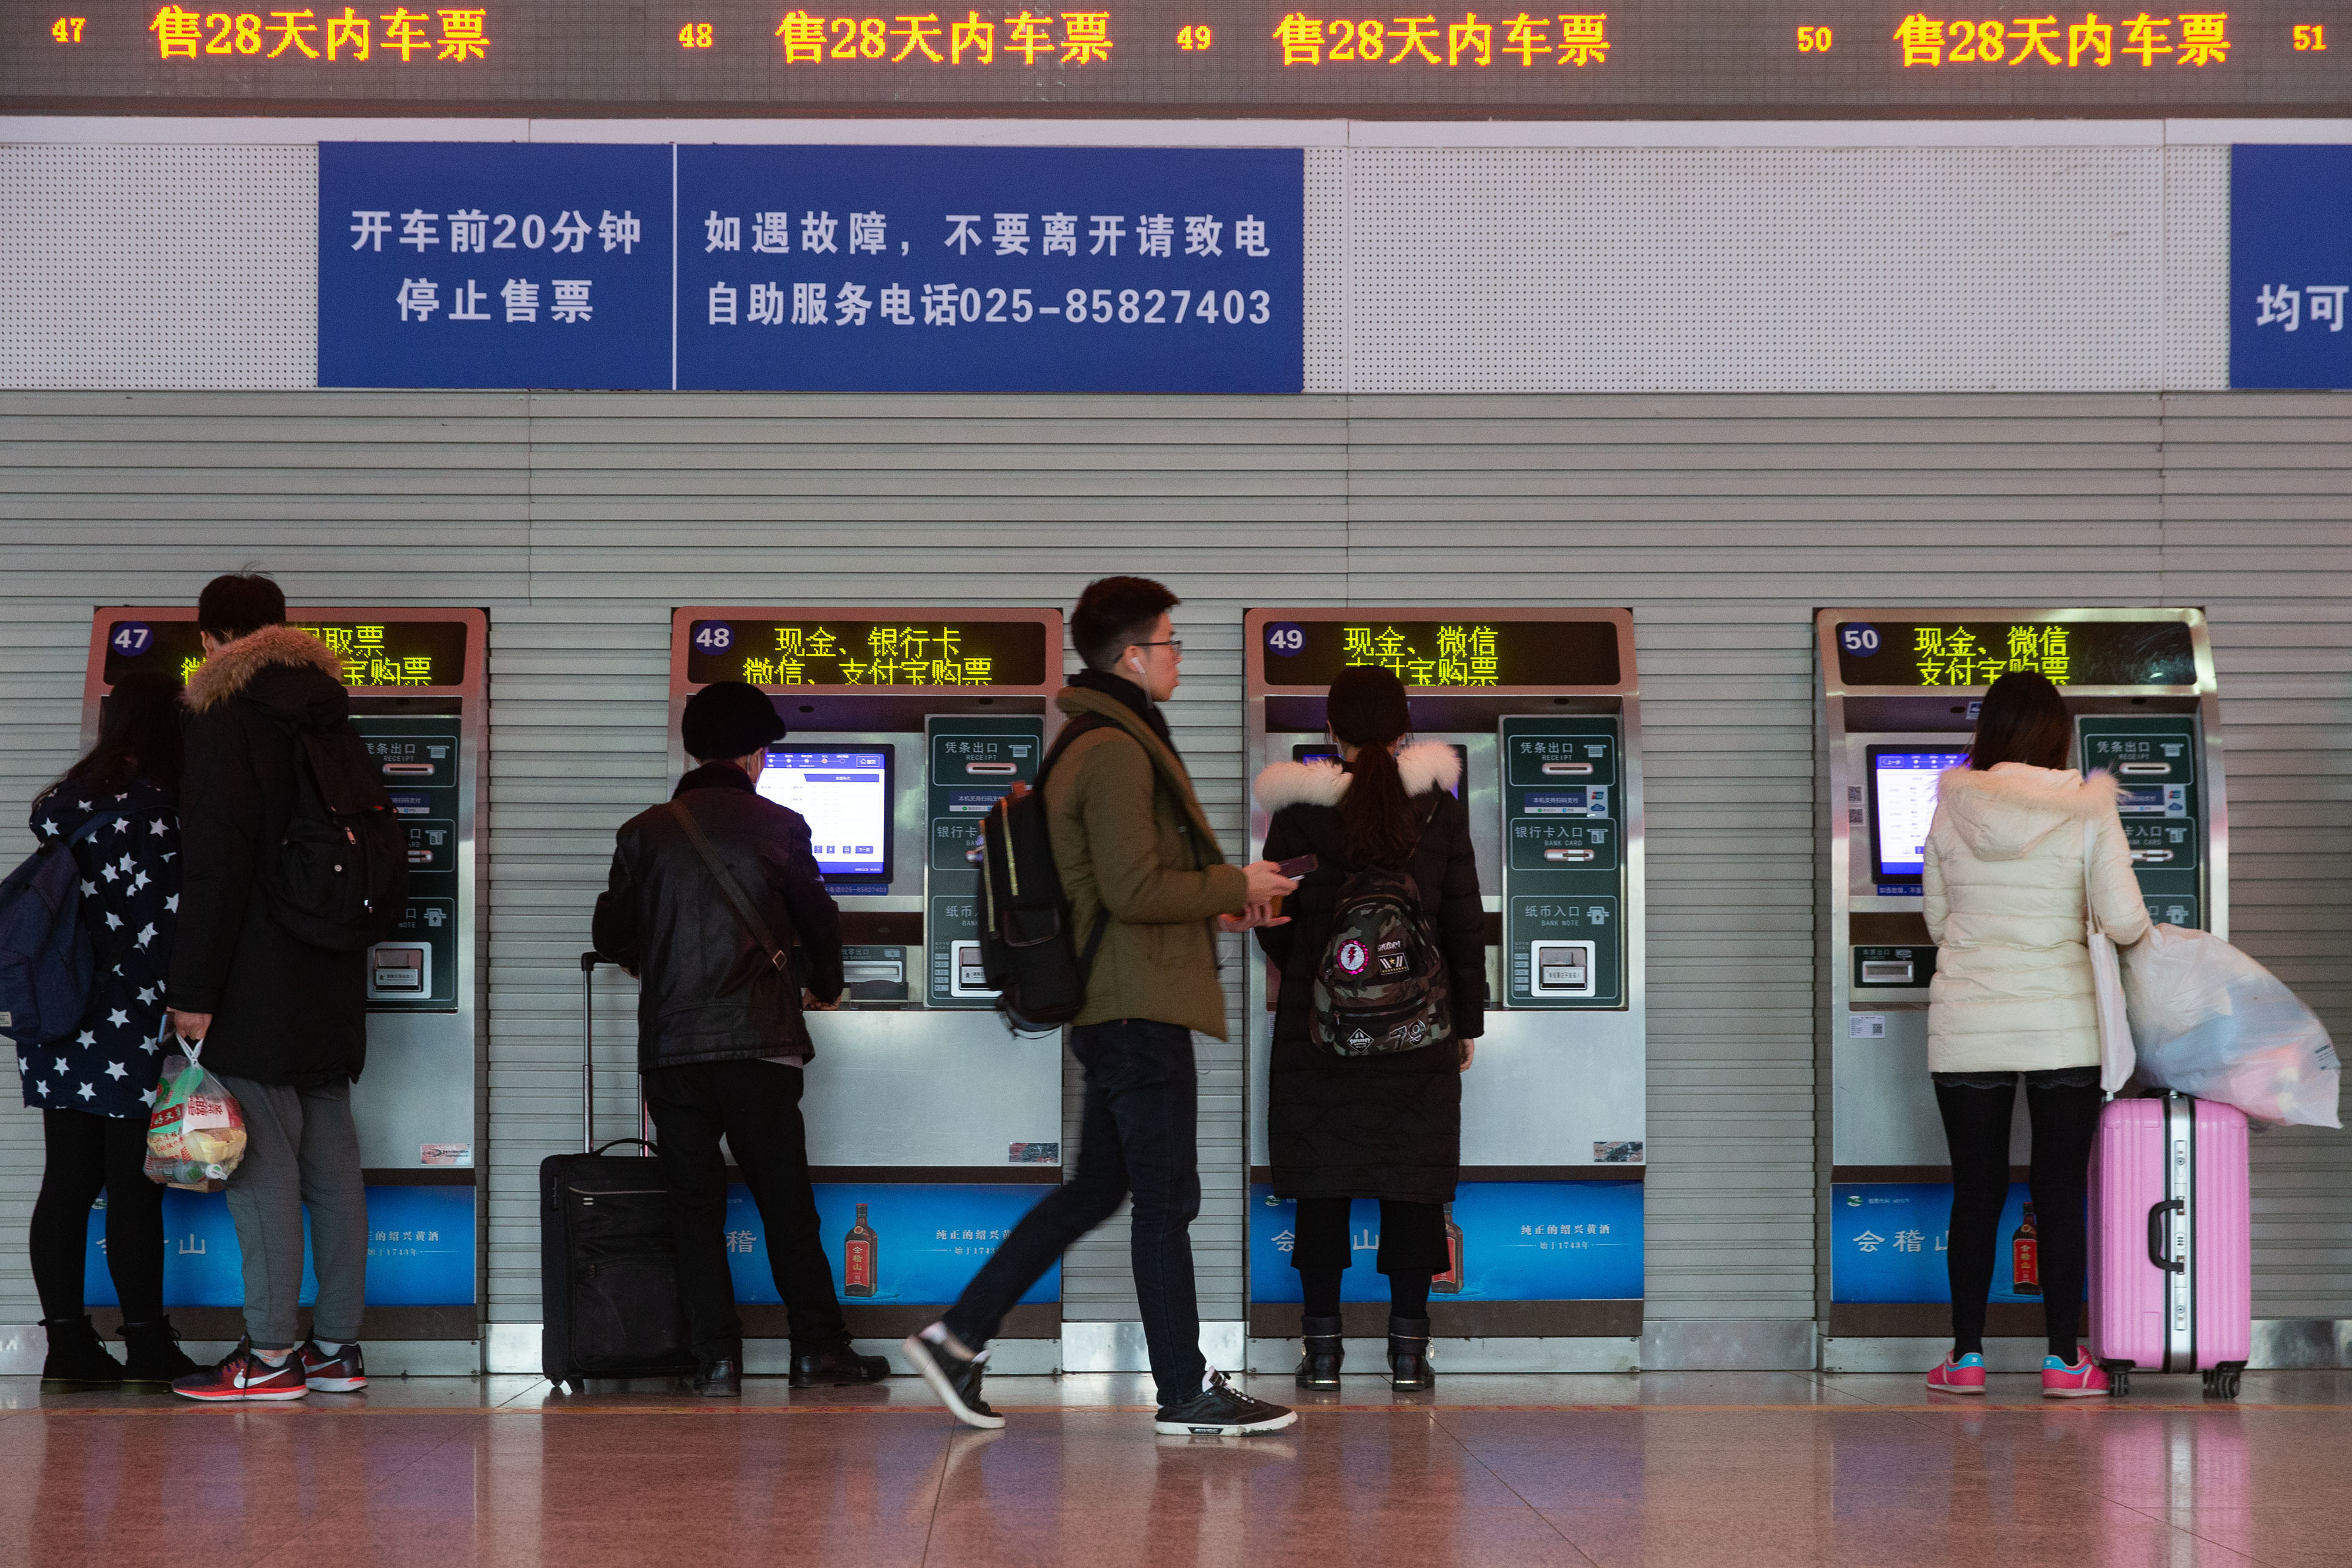 Passengers buy train tickets via ticket vending machines at a train station in Nanjing, Jiangsu Province on December 23, 2018. [File photo: IC]